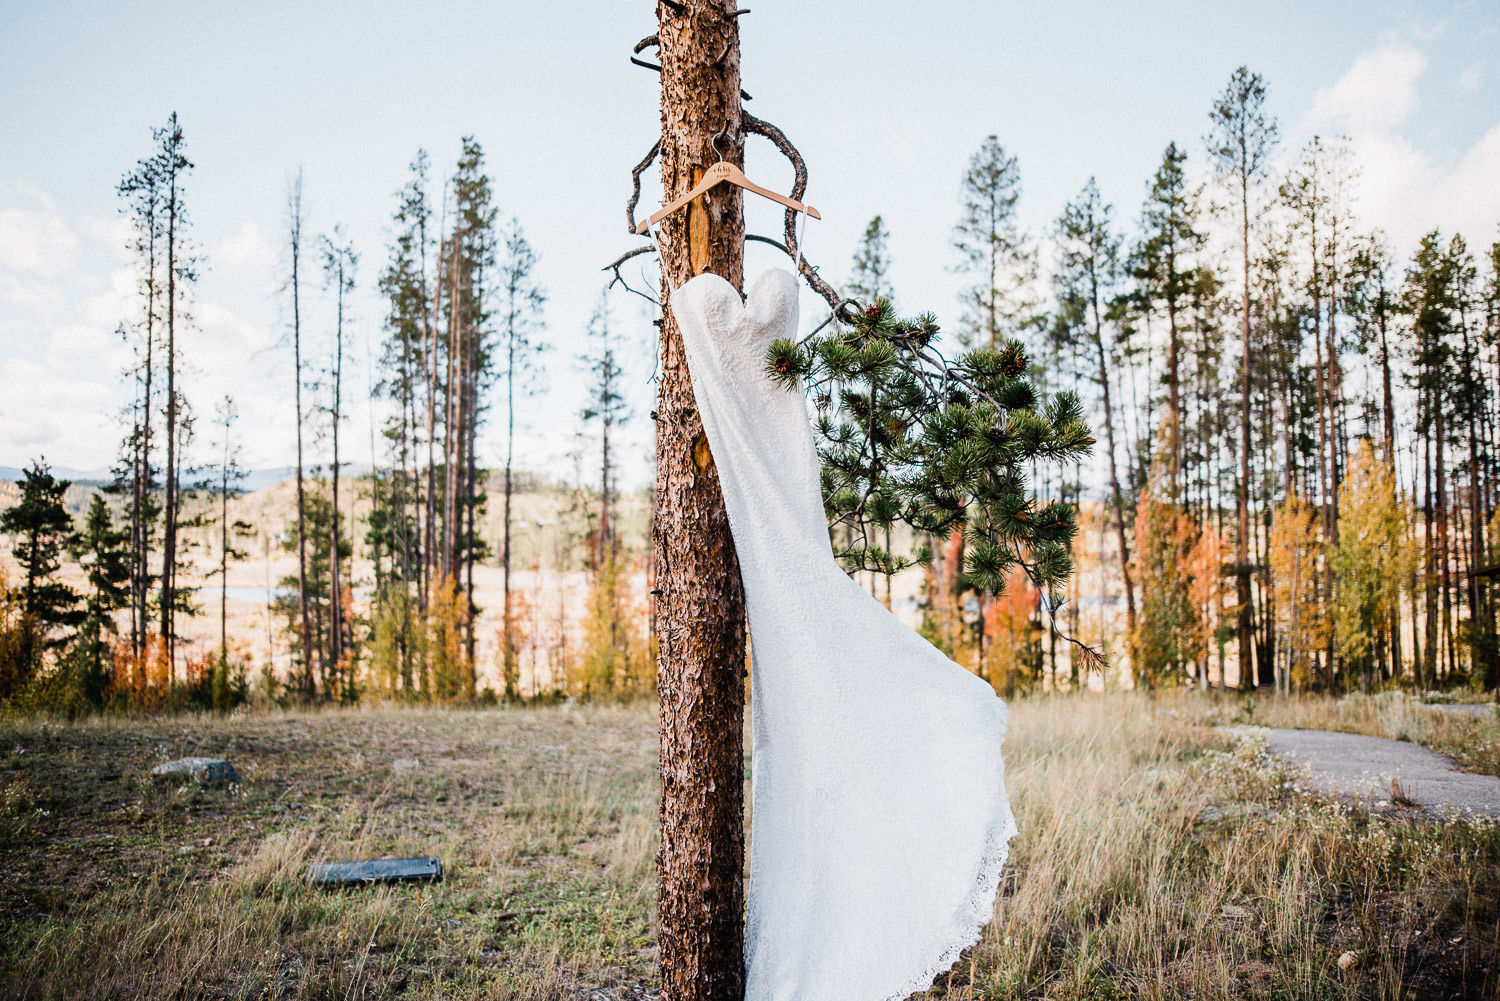 wedding dress blowing in wind